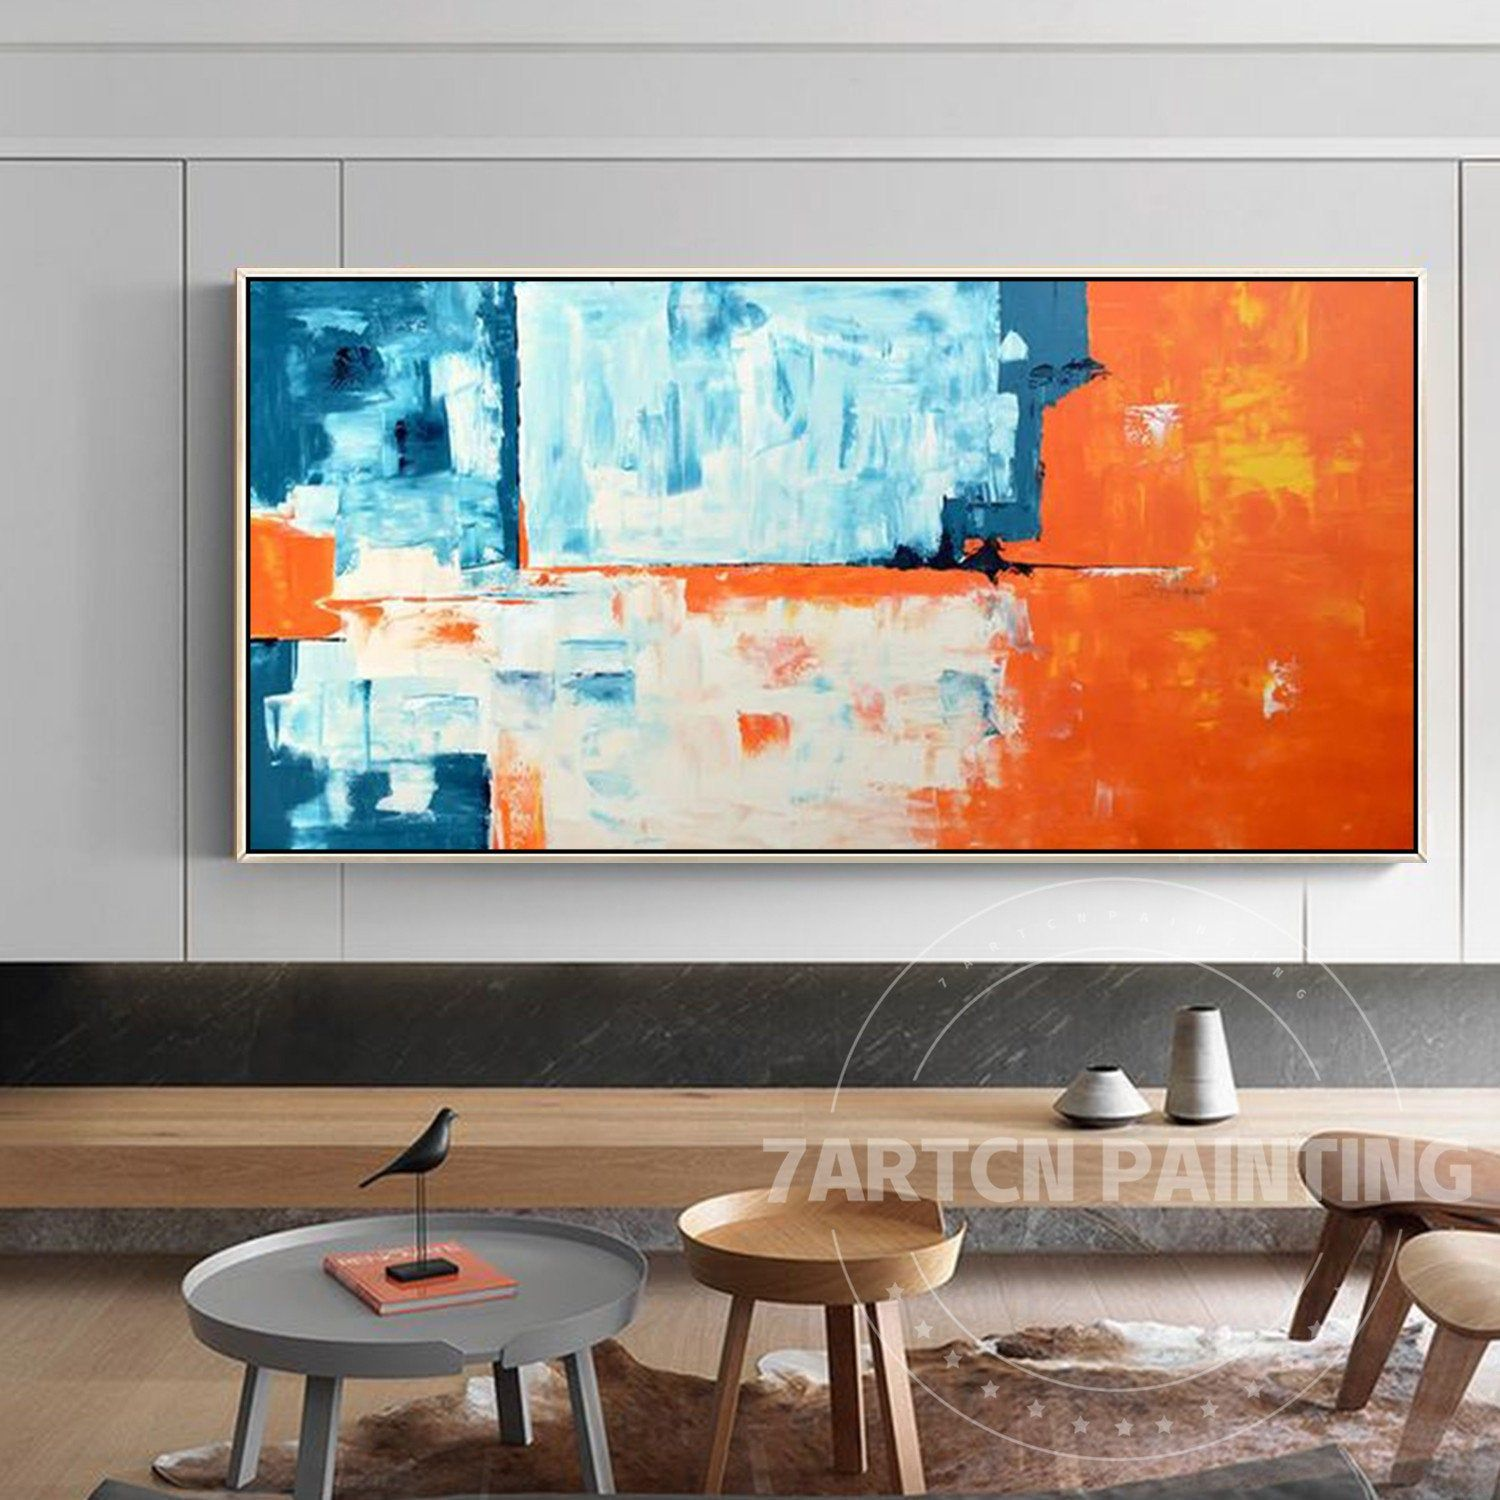 Abstract Acrylic Painting Orange Blue White Background Framed Canvas Cuadros Abstractos On Canvas Abstract Painting Acrylic Wall Art Pictures Abstract Acrylic